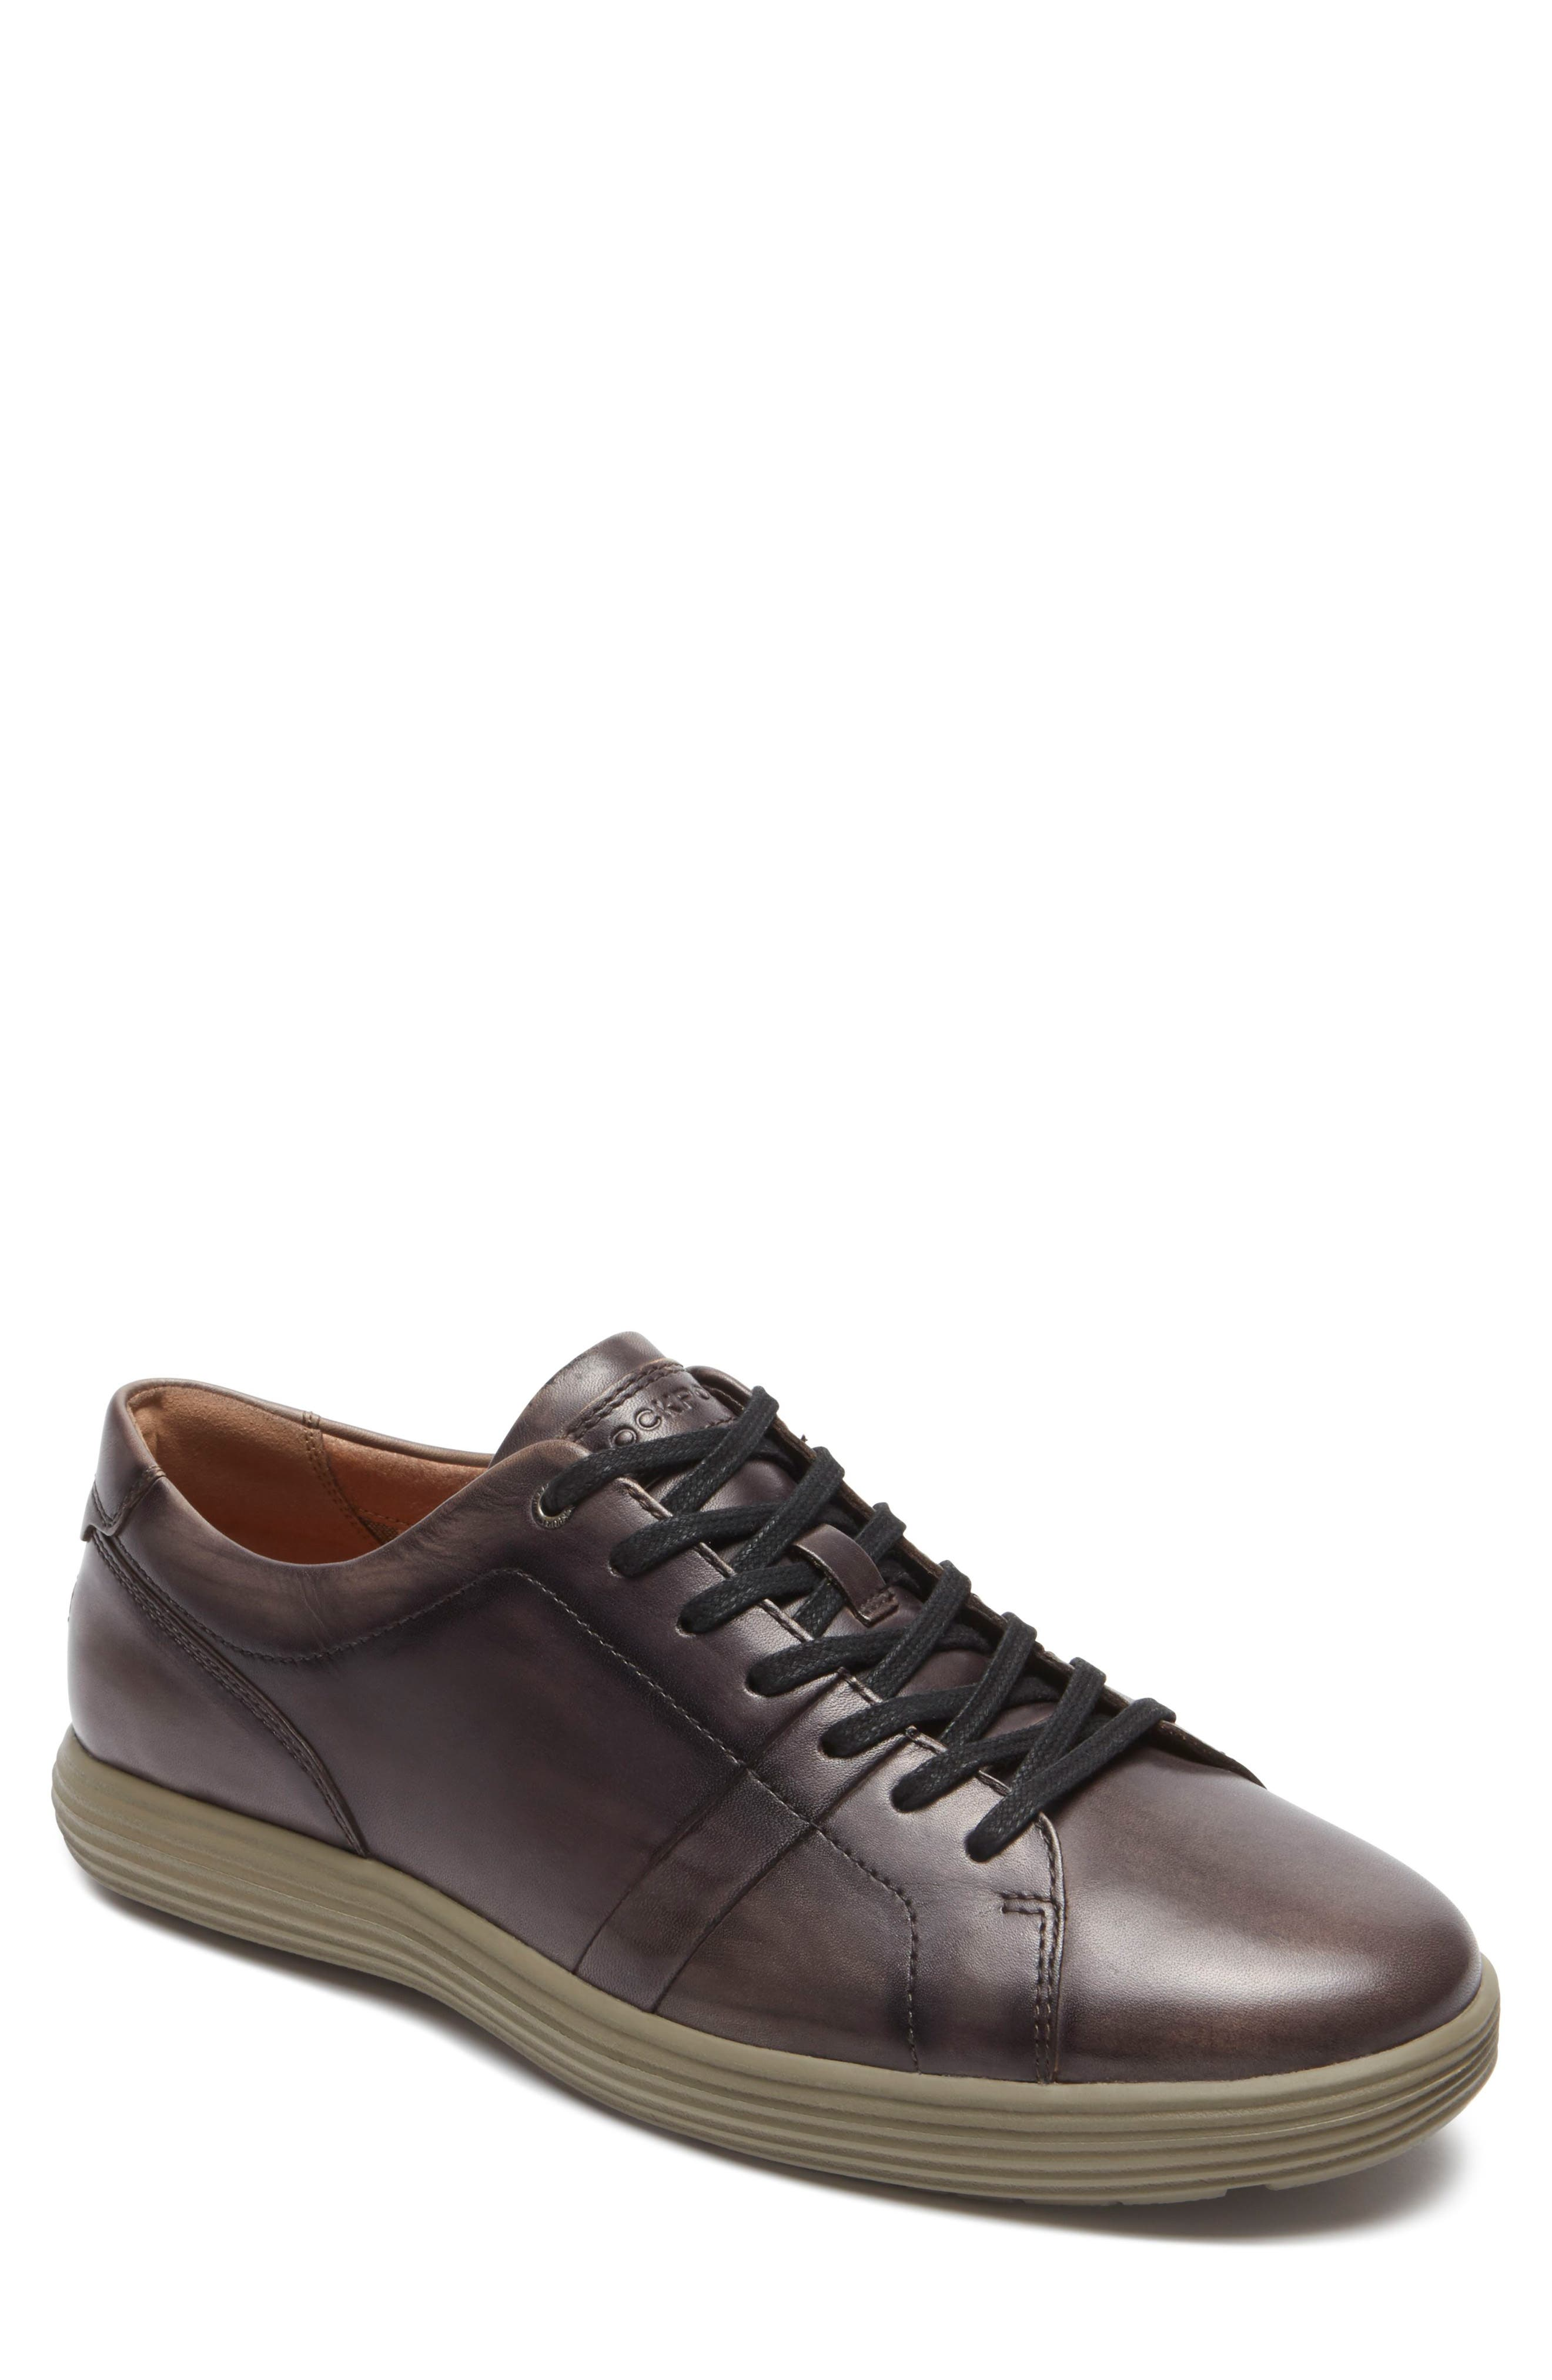 Thurston Sneaker,                             Alternate thumbnail 10, color,